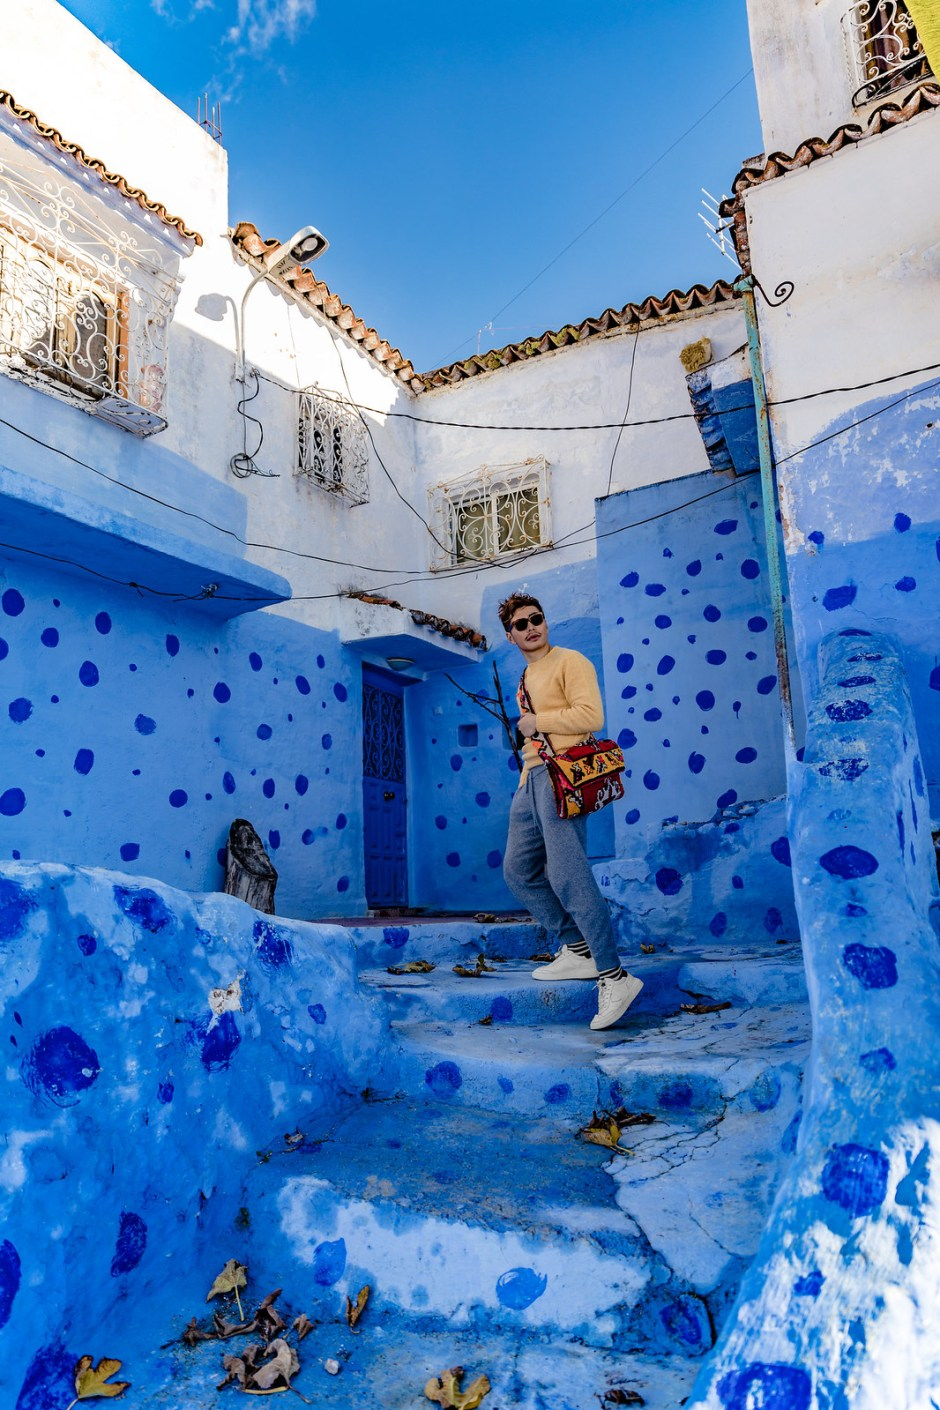 by Lily chefchaouen general